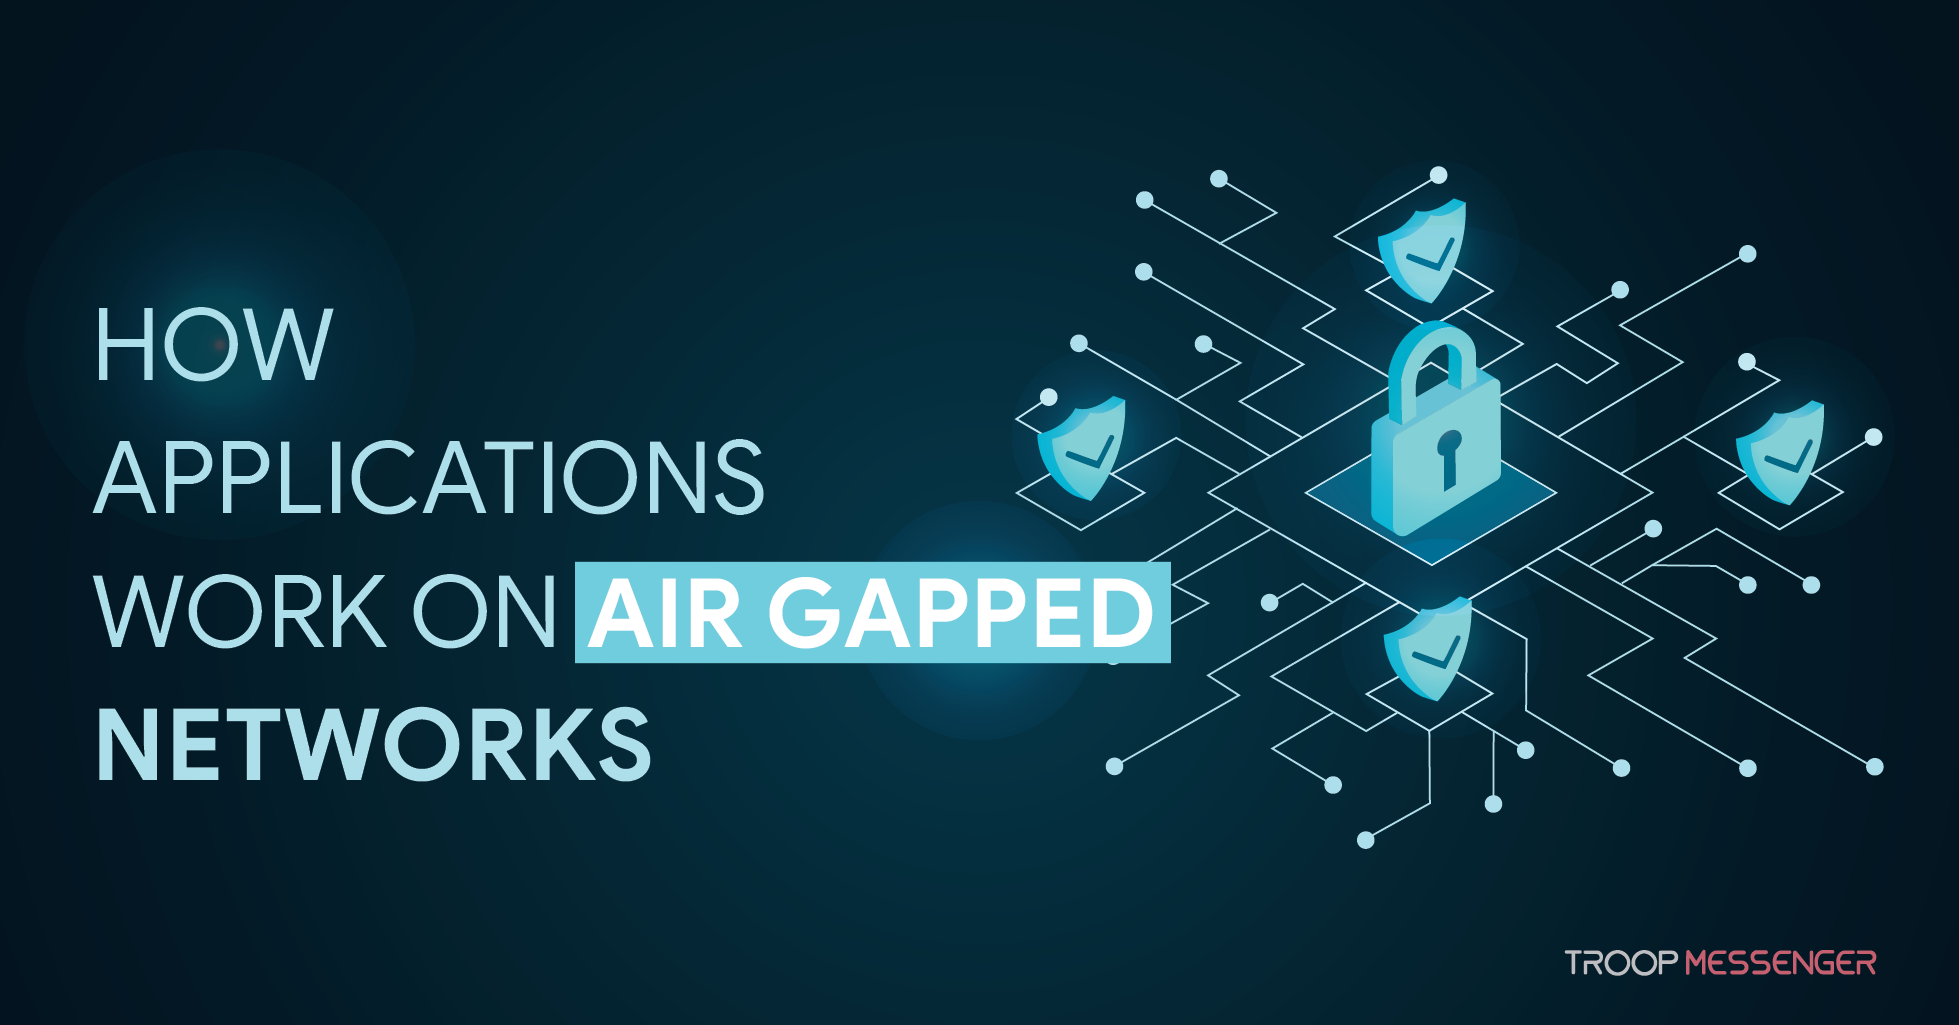 /air-gapped-networks-computer